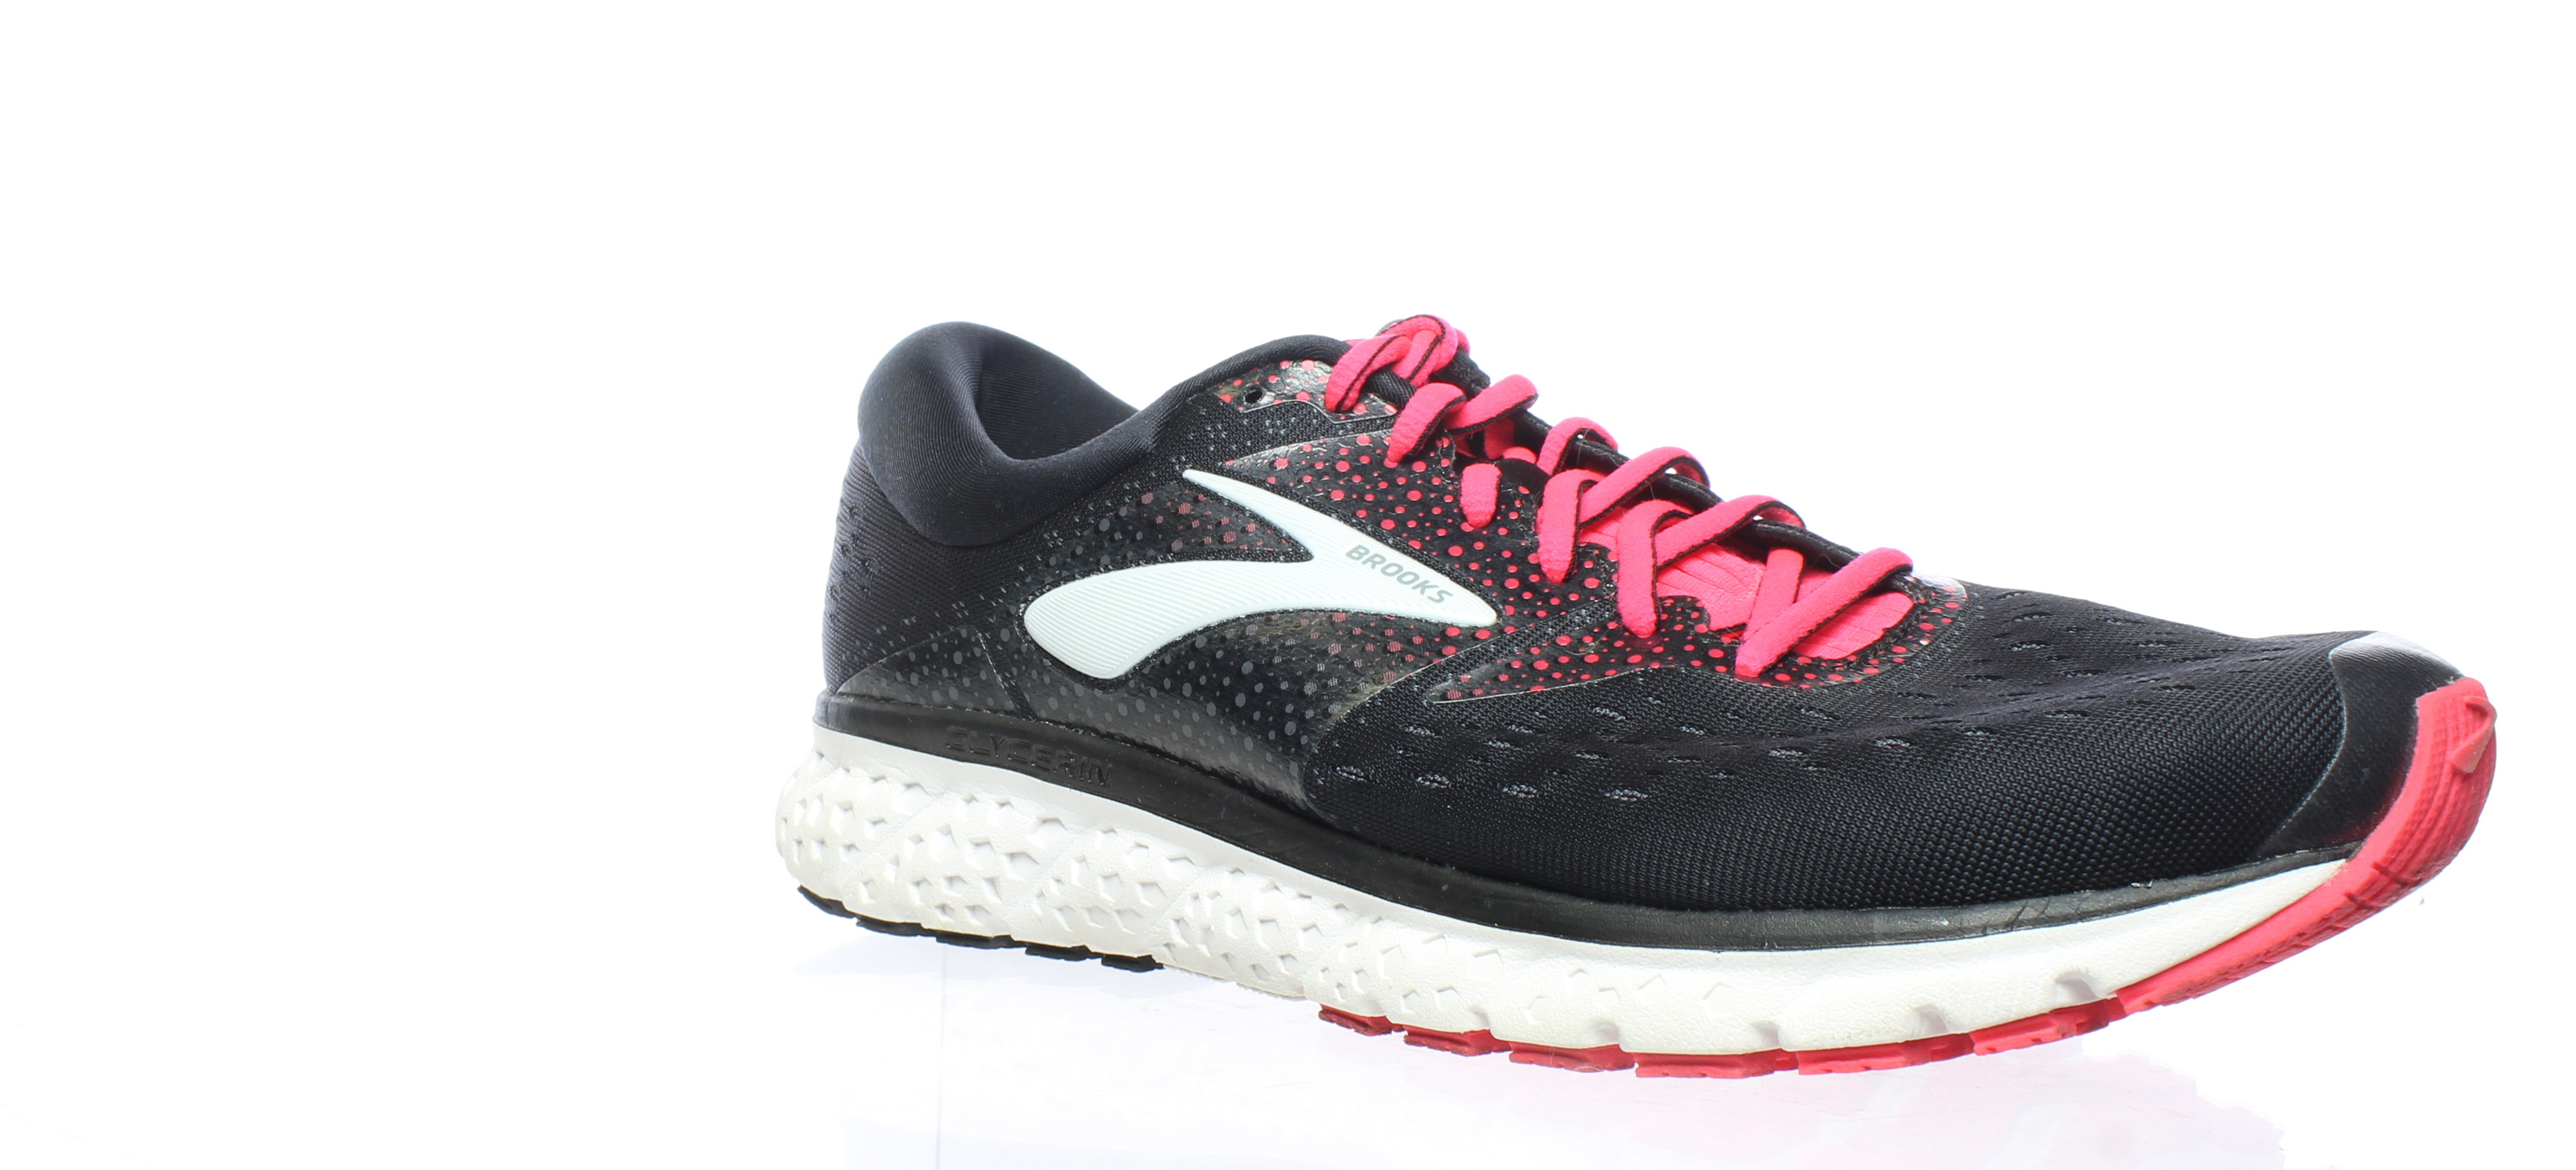 3545fc7df9d Details about Brooks Womens Glycerin 16 Black Pink Grey Running Shoes Size  12 (212517)